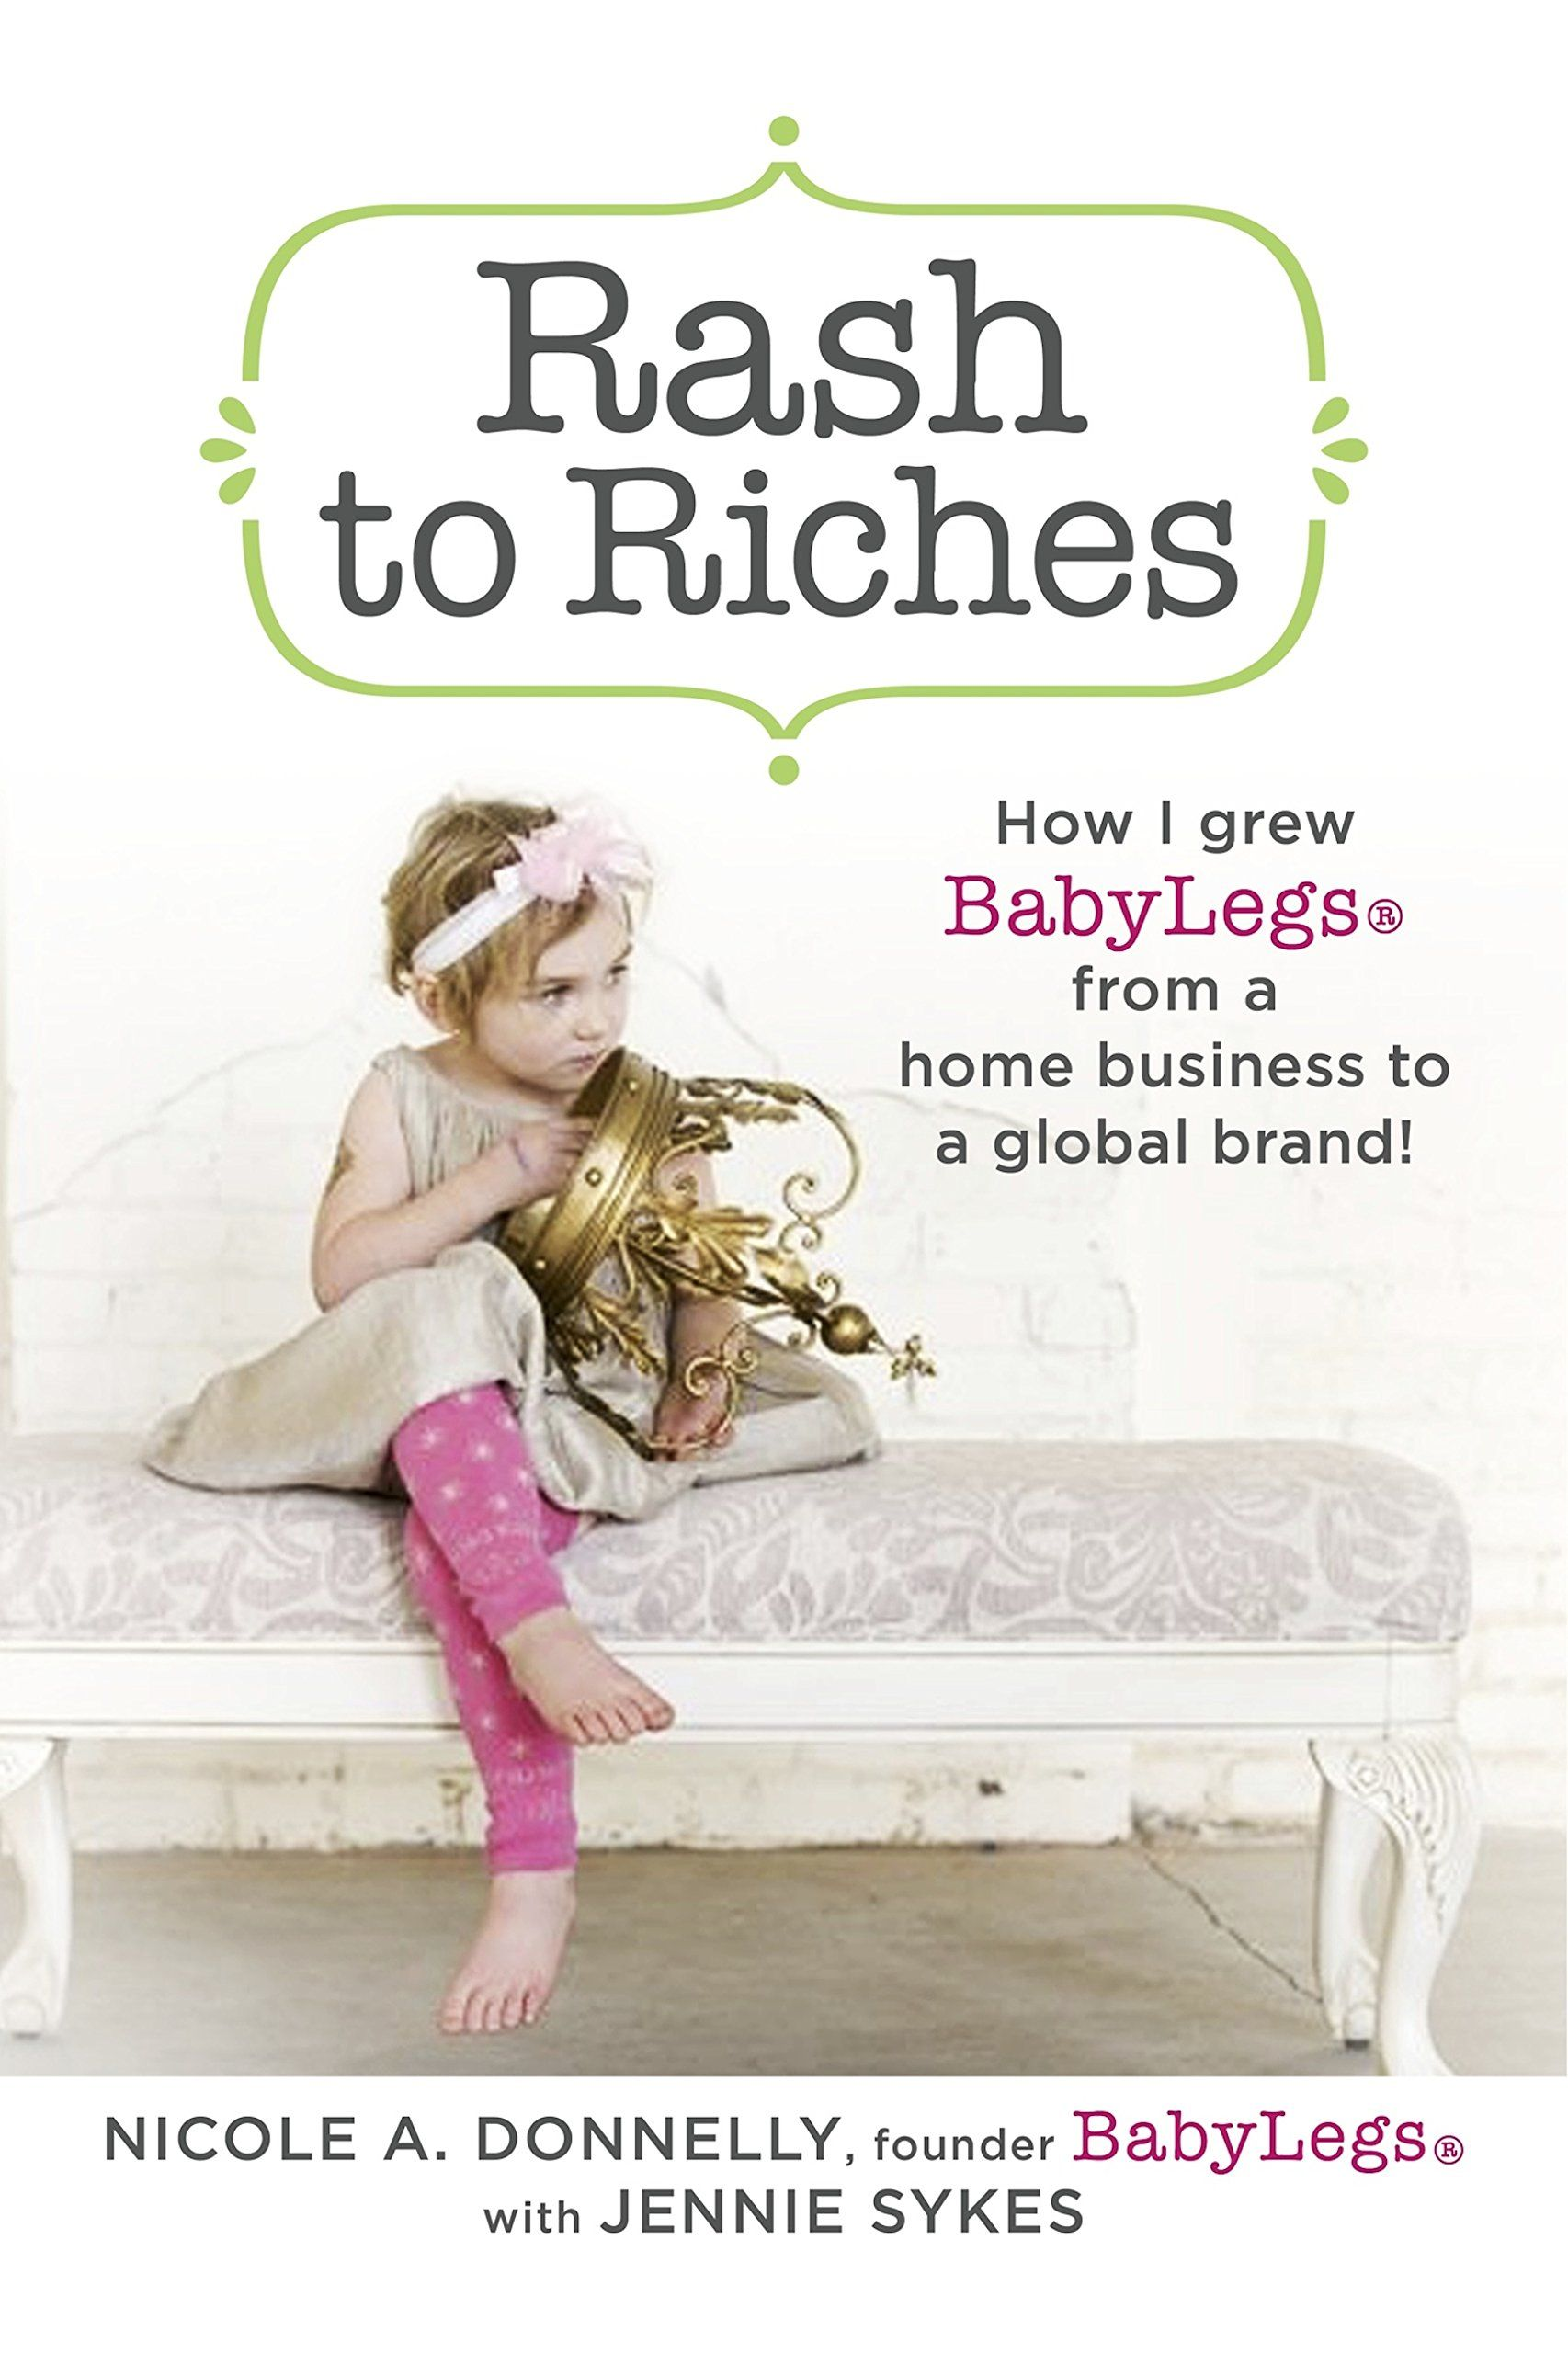 Rash to Riches: How I Grew BabyLegs from a Home Business to a Global Brand!:Amazon:Kindle Store